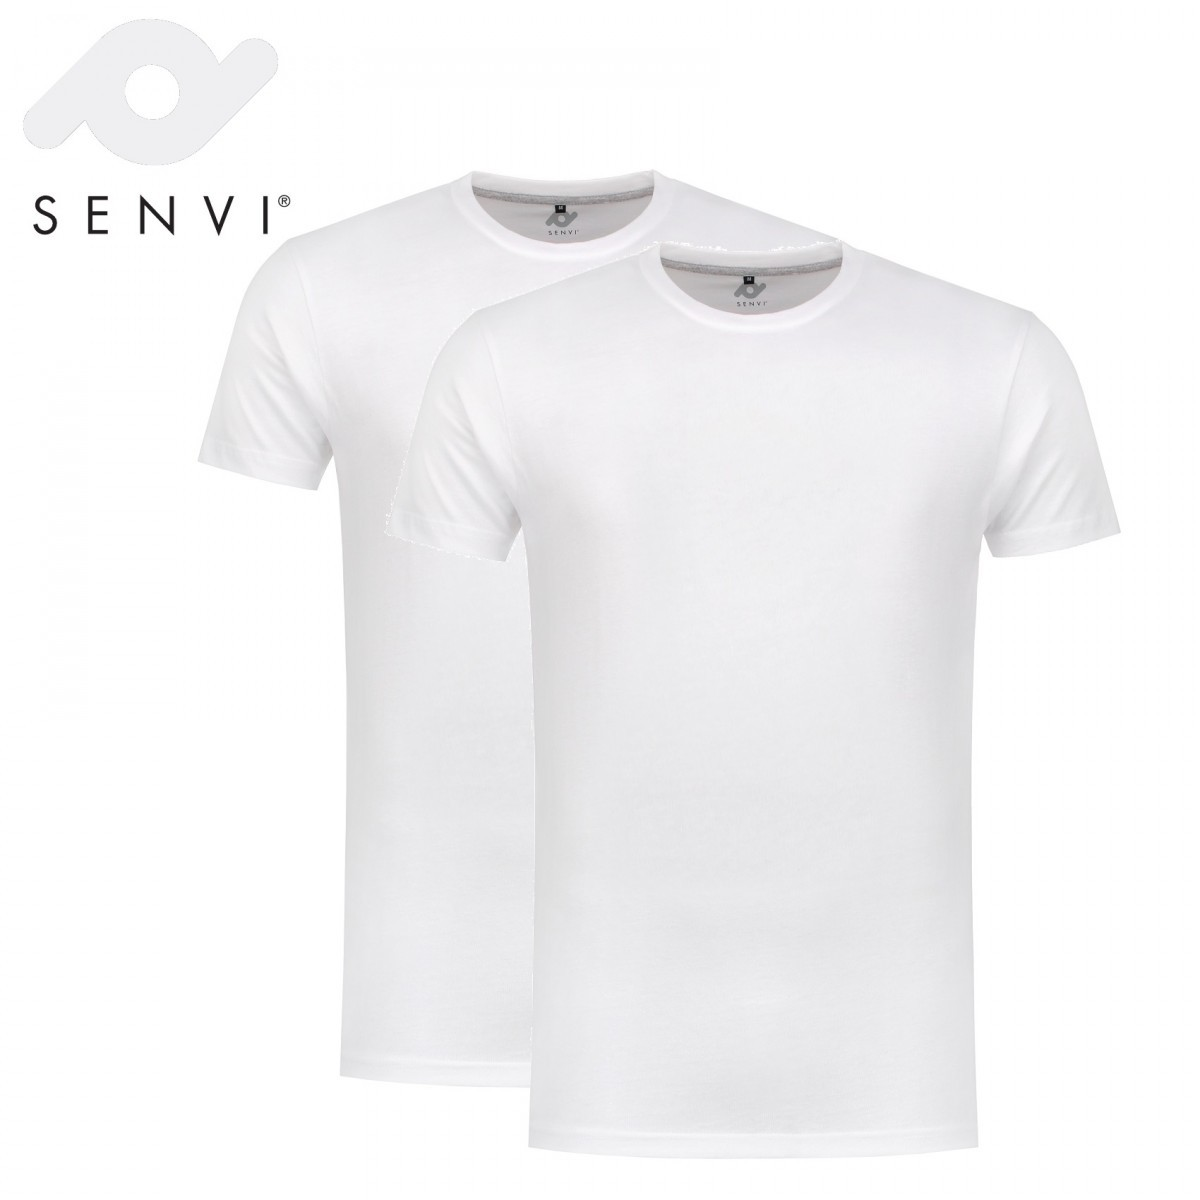 Senvi Basic T-Shirt Wit 2 Pack Maat S